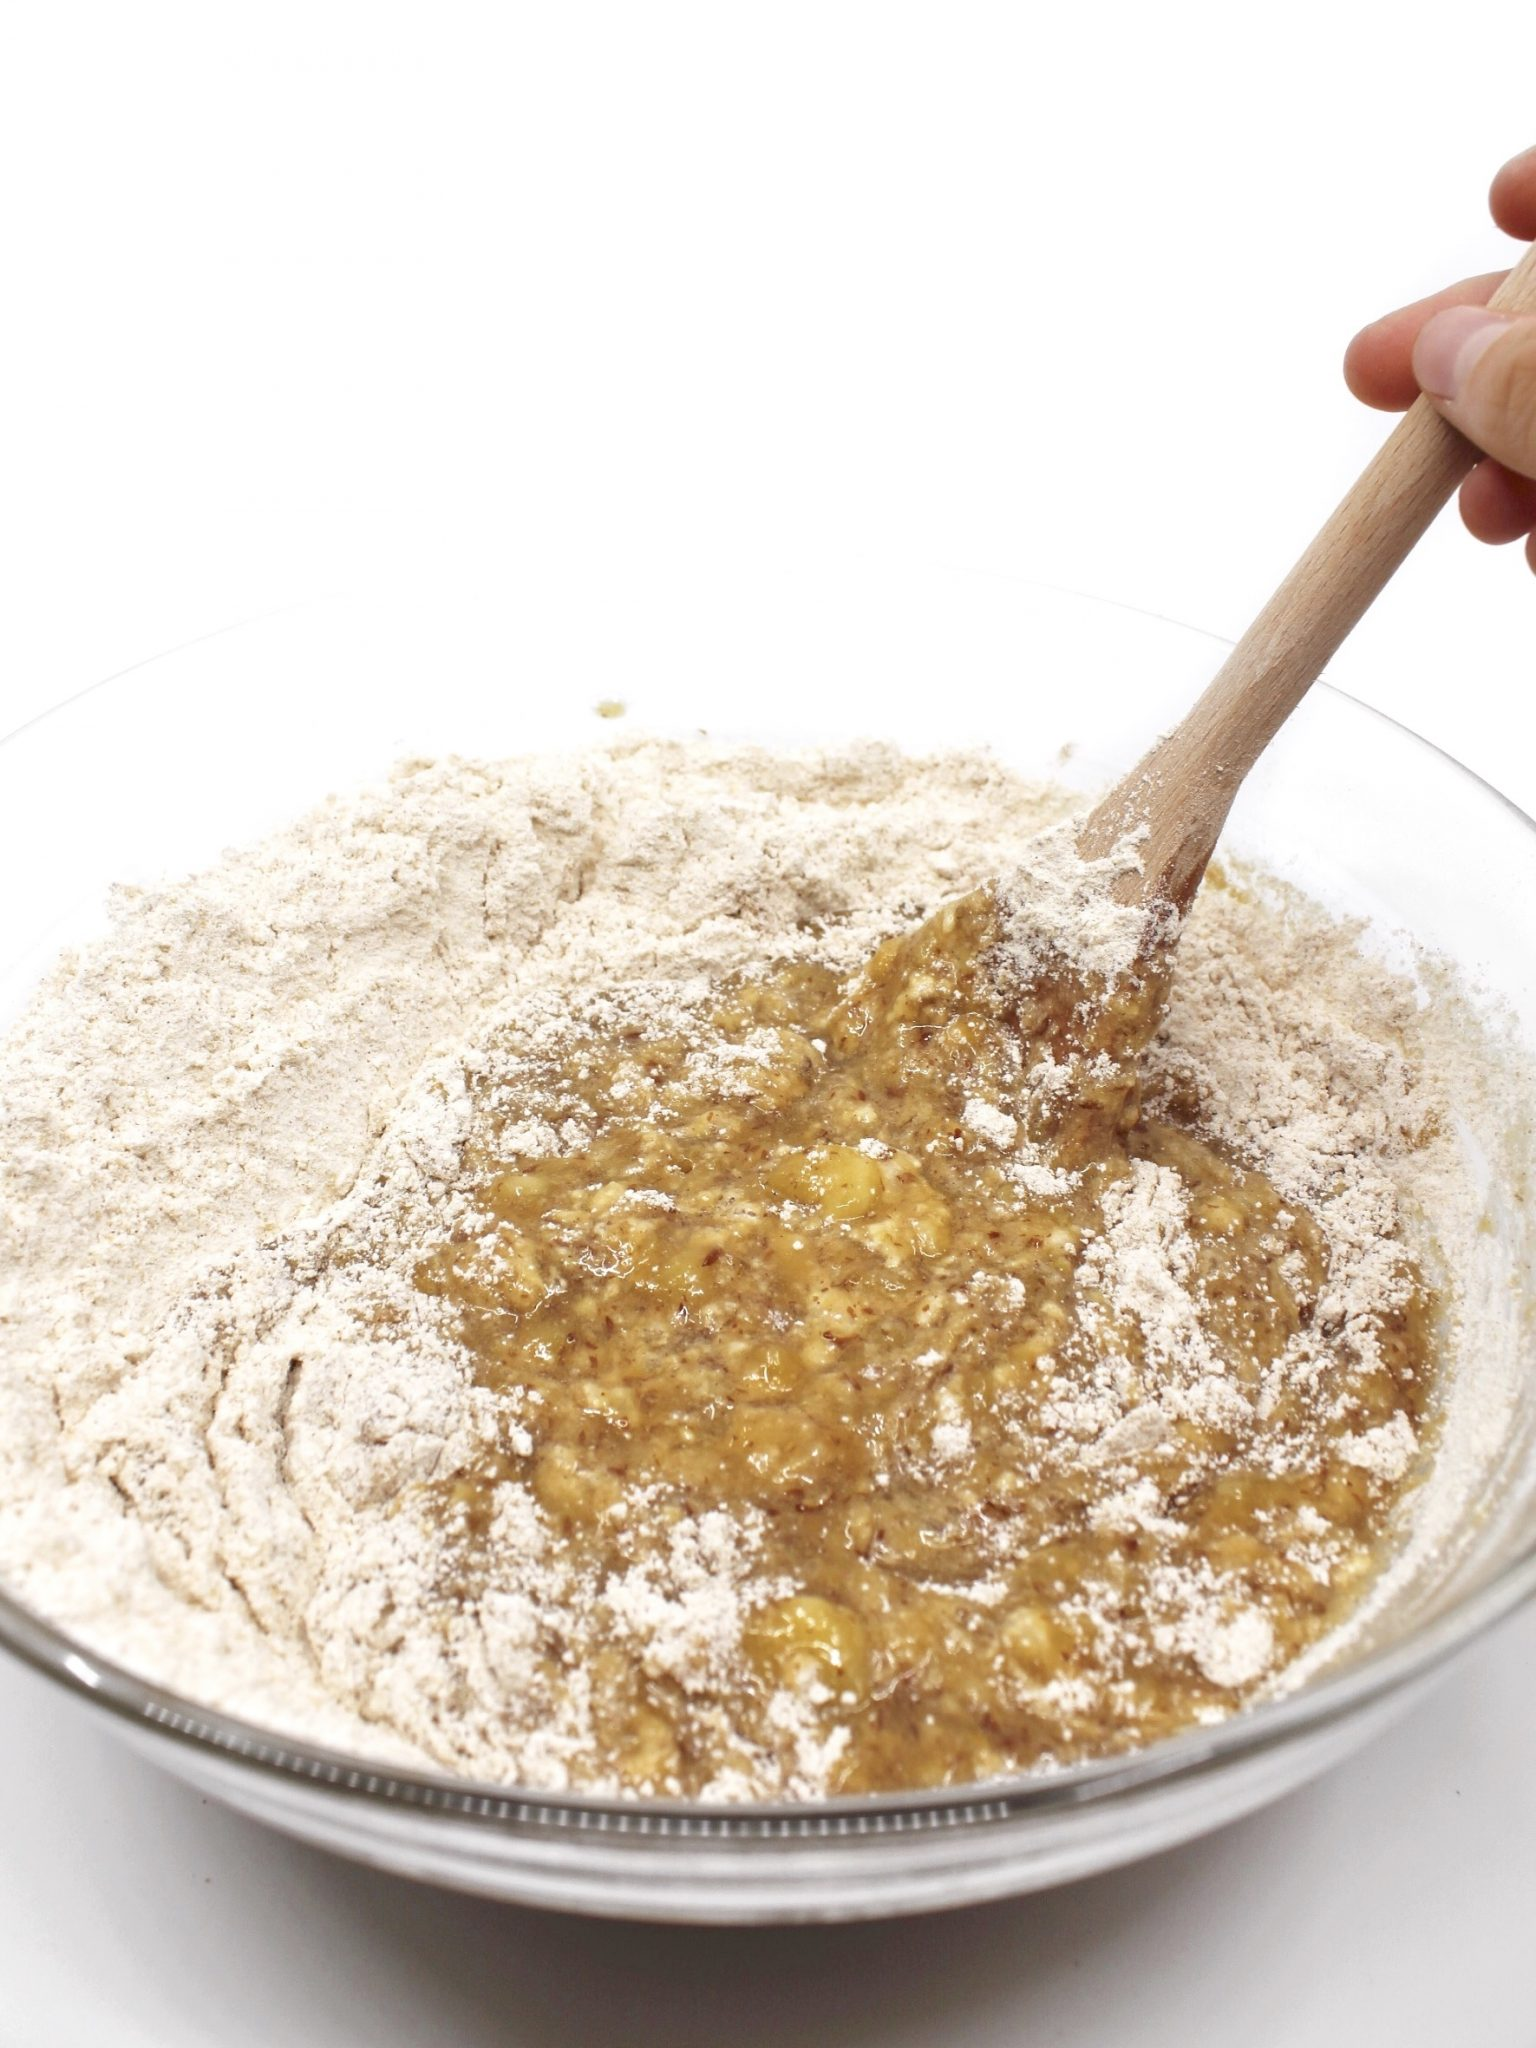 The BEST Vegan Banana Bread Batter